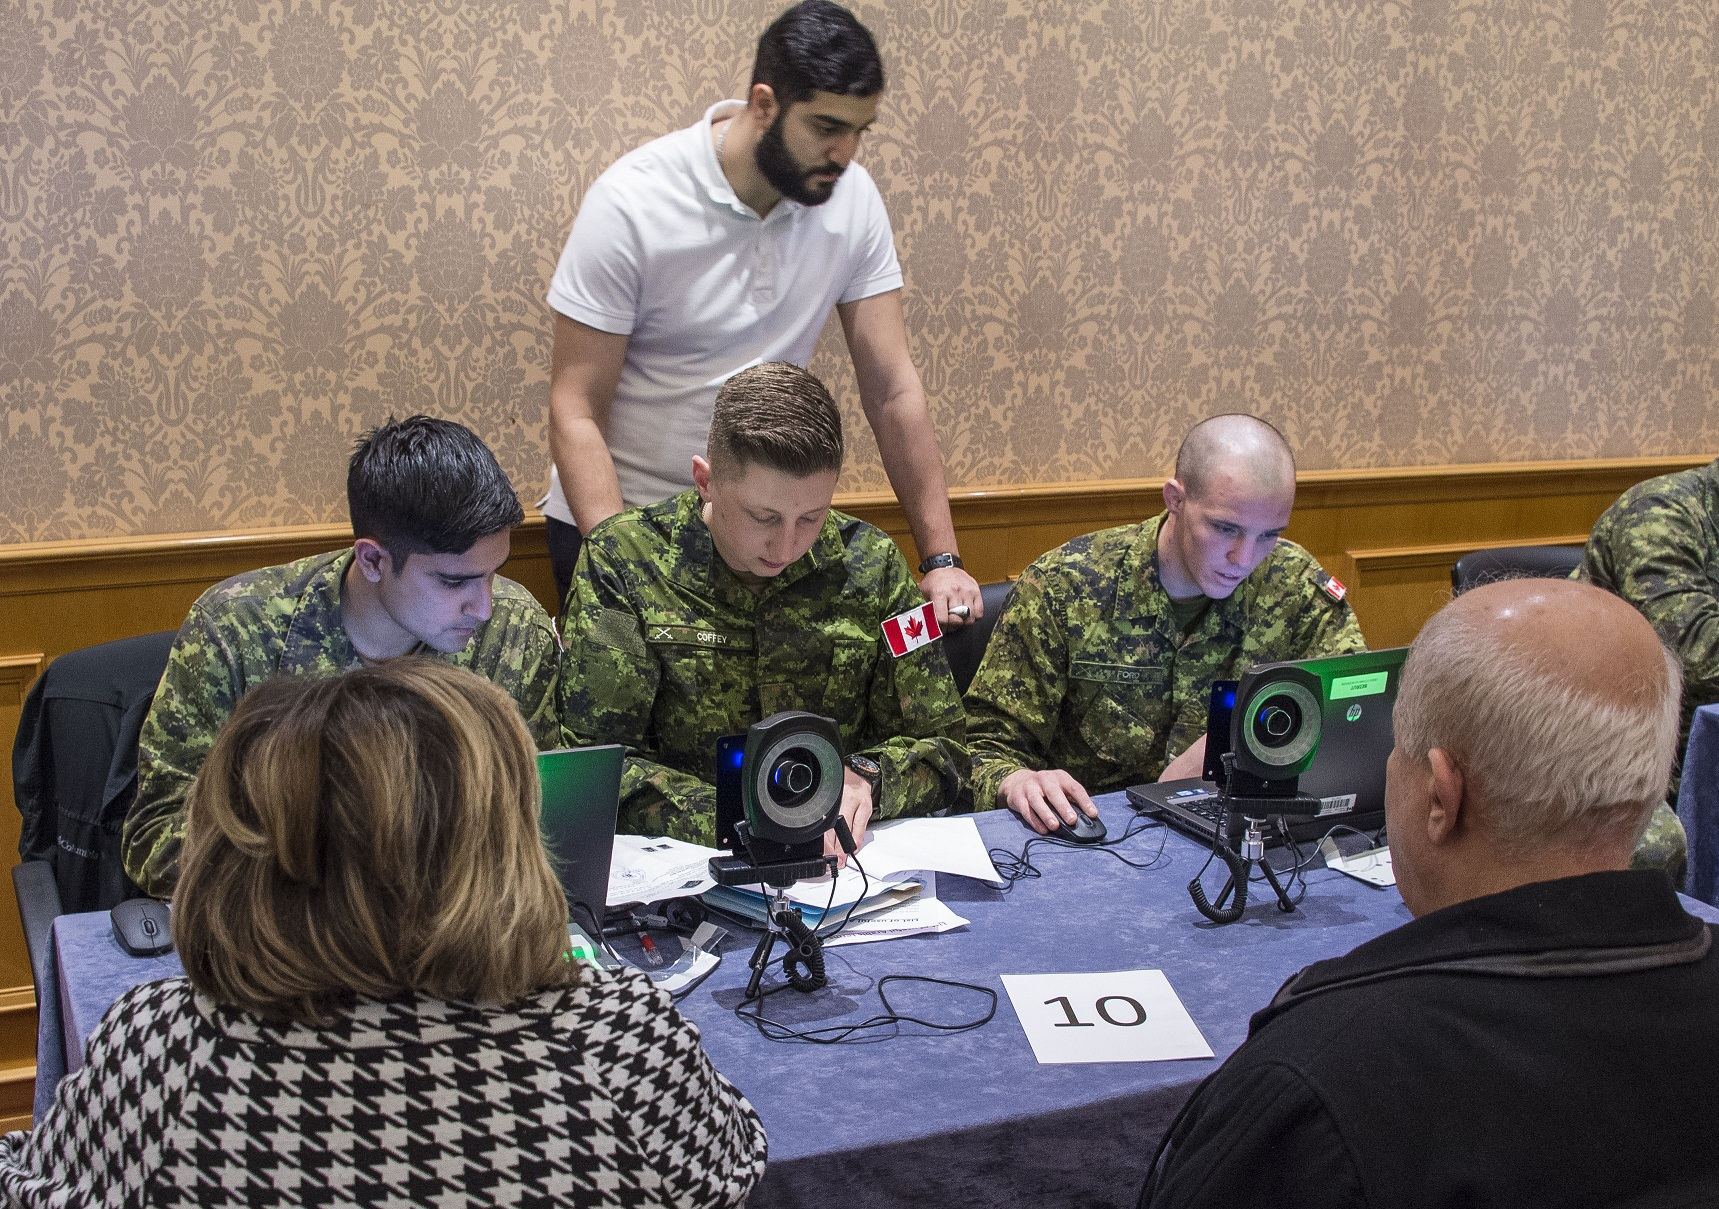 Three male soldiers dressed in camouflage and one civilian male are at a table interviewing a male and female refugee claimant.